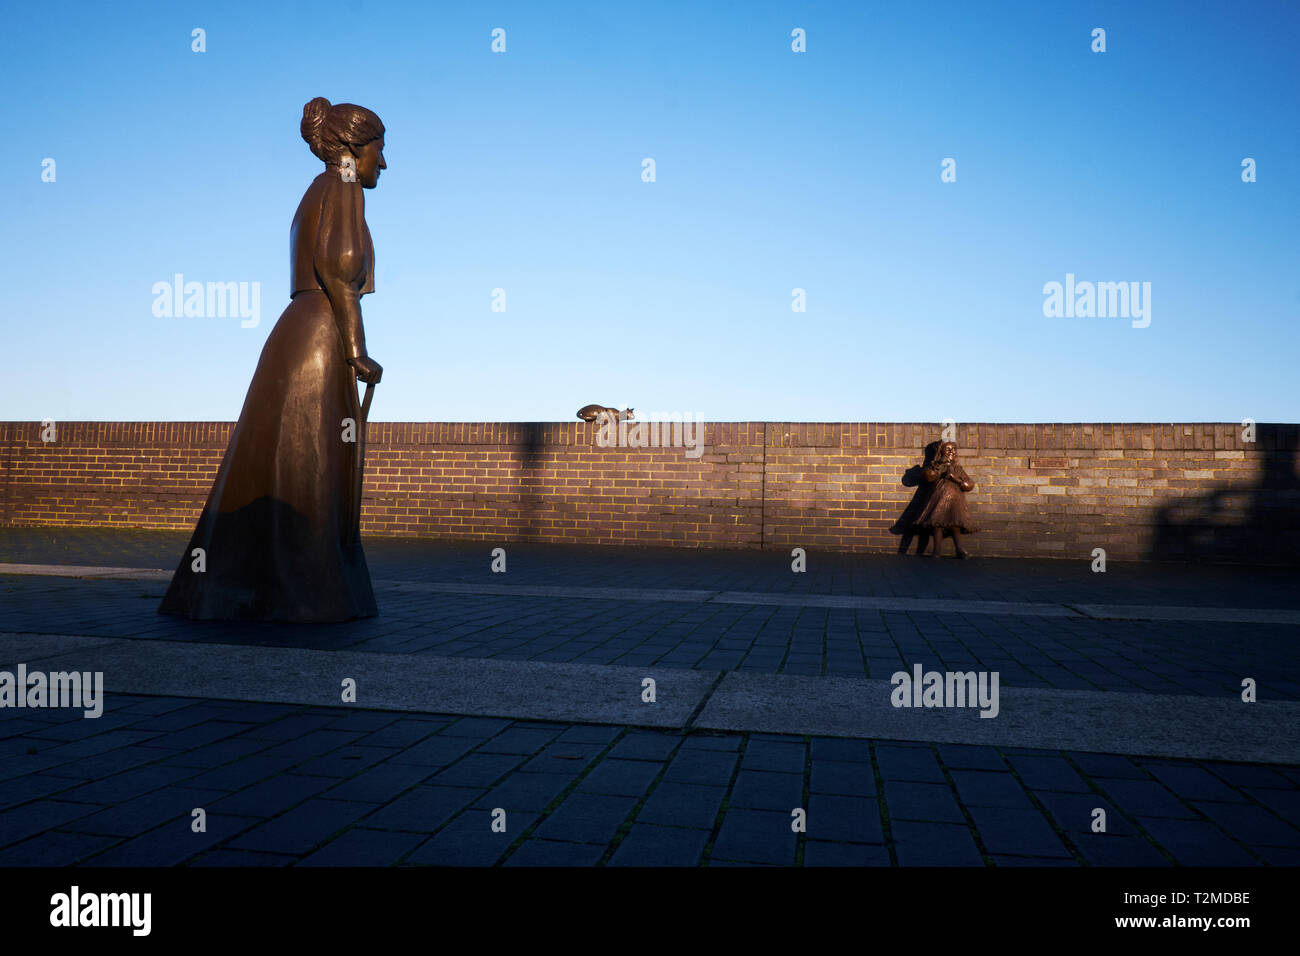 Statues of Alfred and Ada Salter, and a cat, in Rotherhithe, London, UK. The statues are also known as Dr. Salter's Daydream - Stock Image